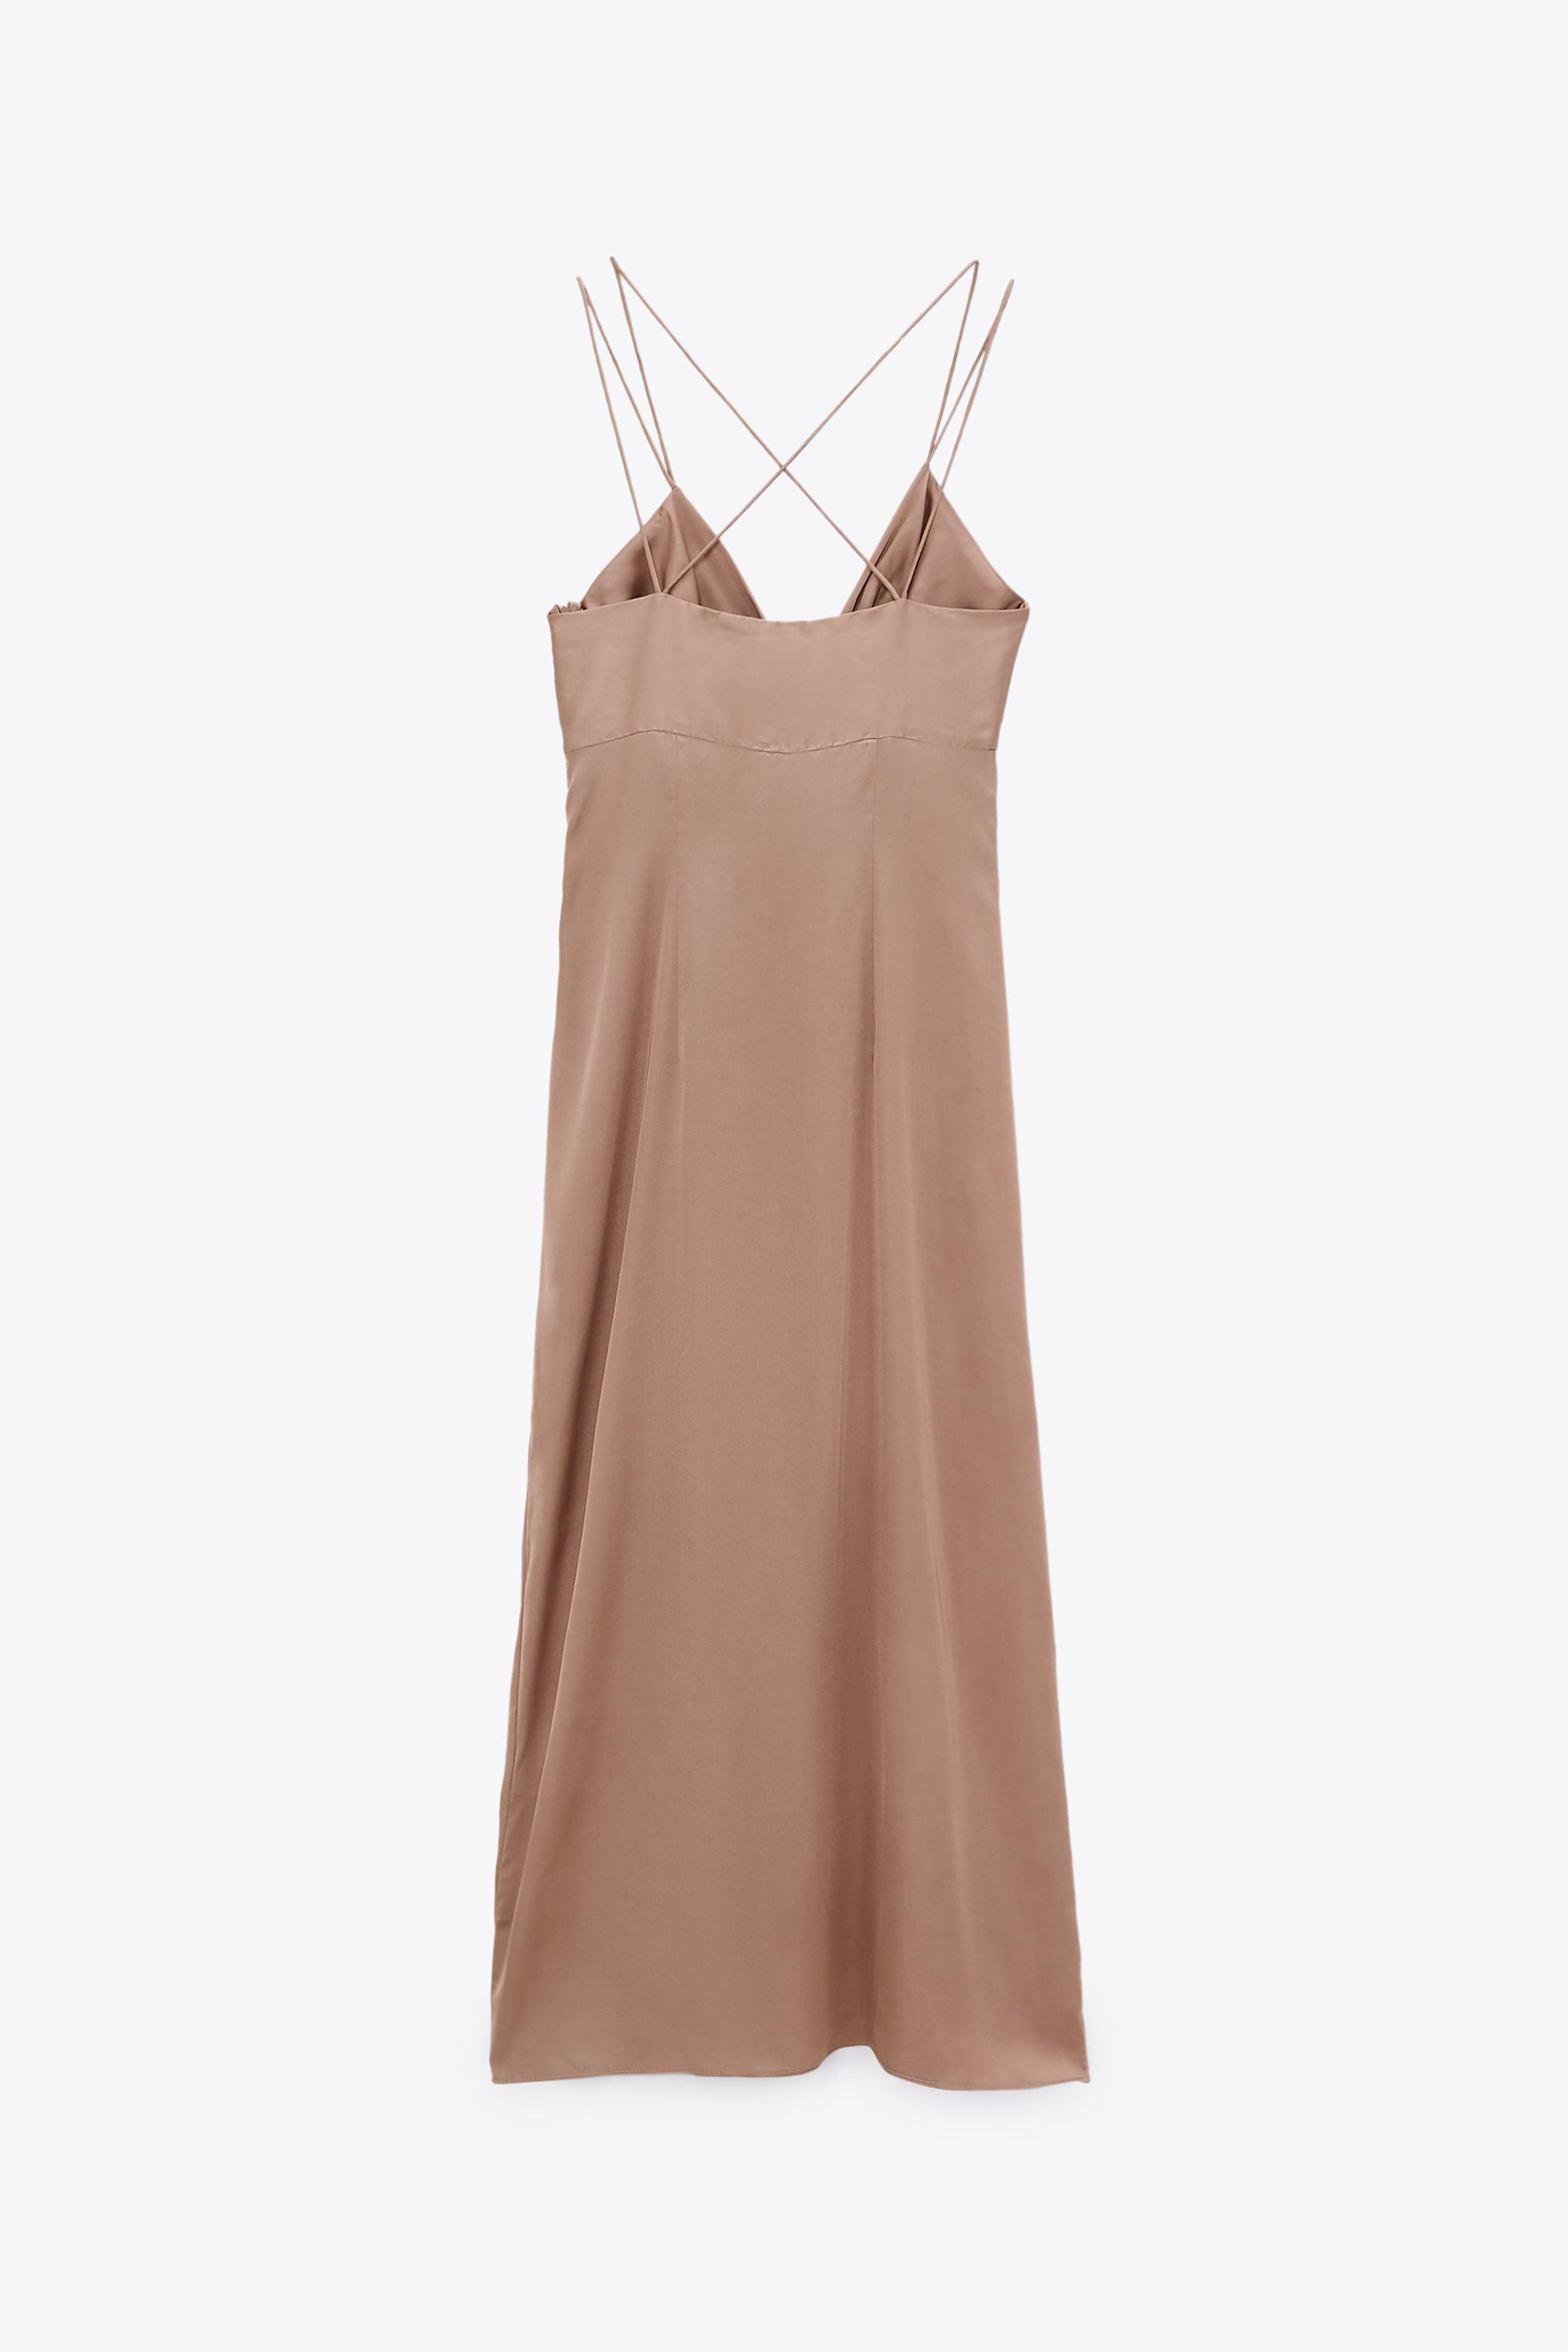 KNOTTED SLIP DRESS 5